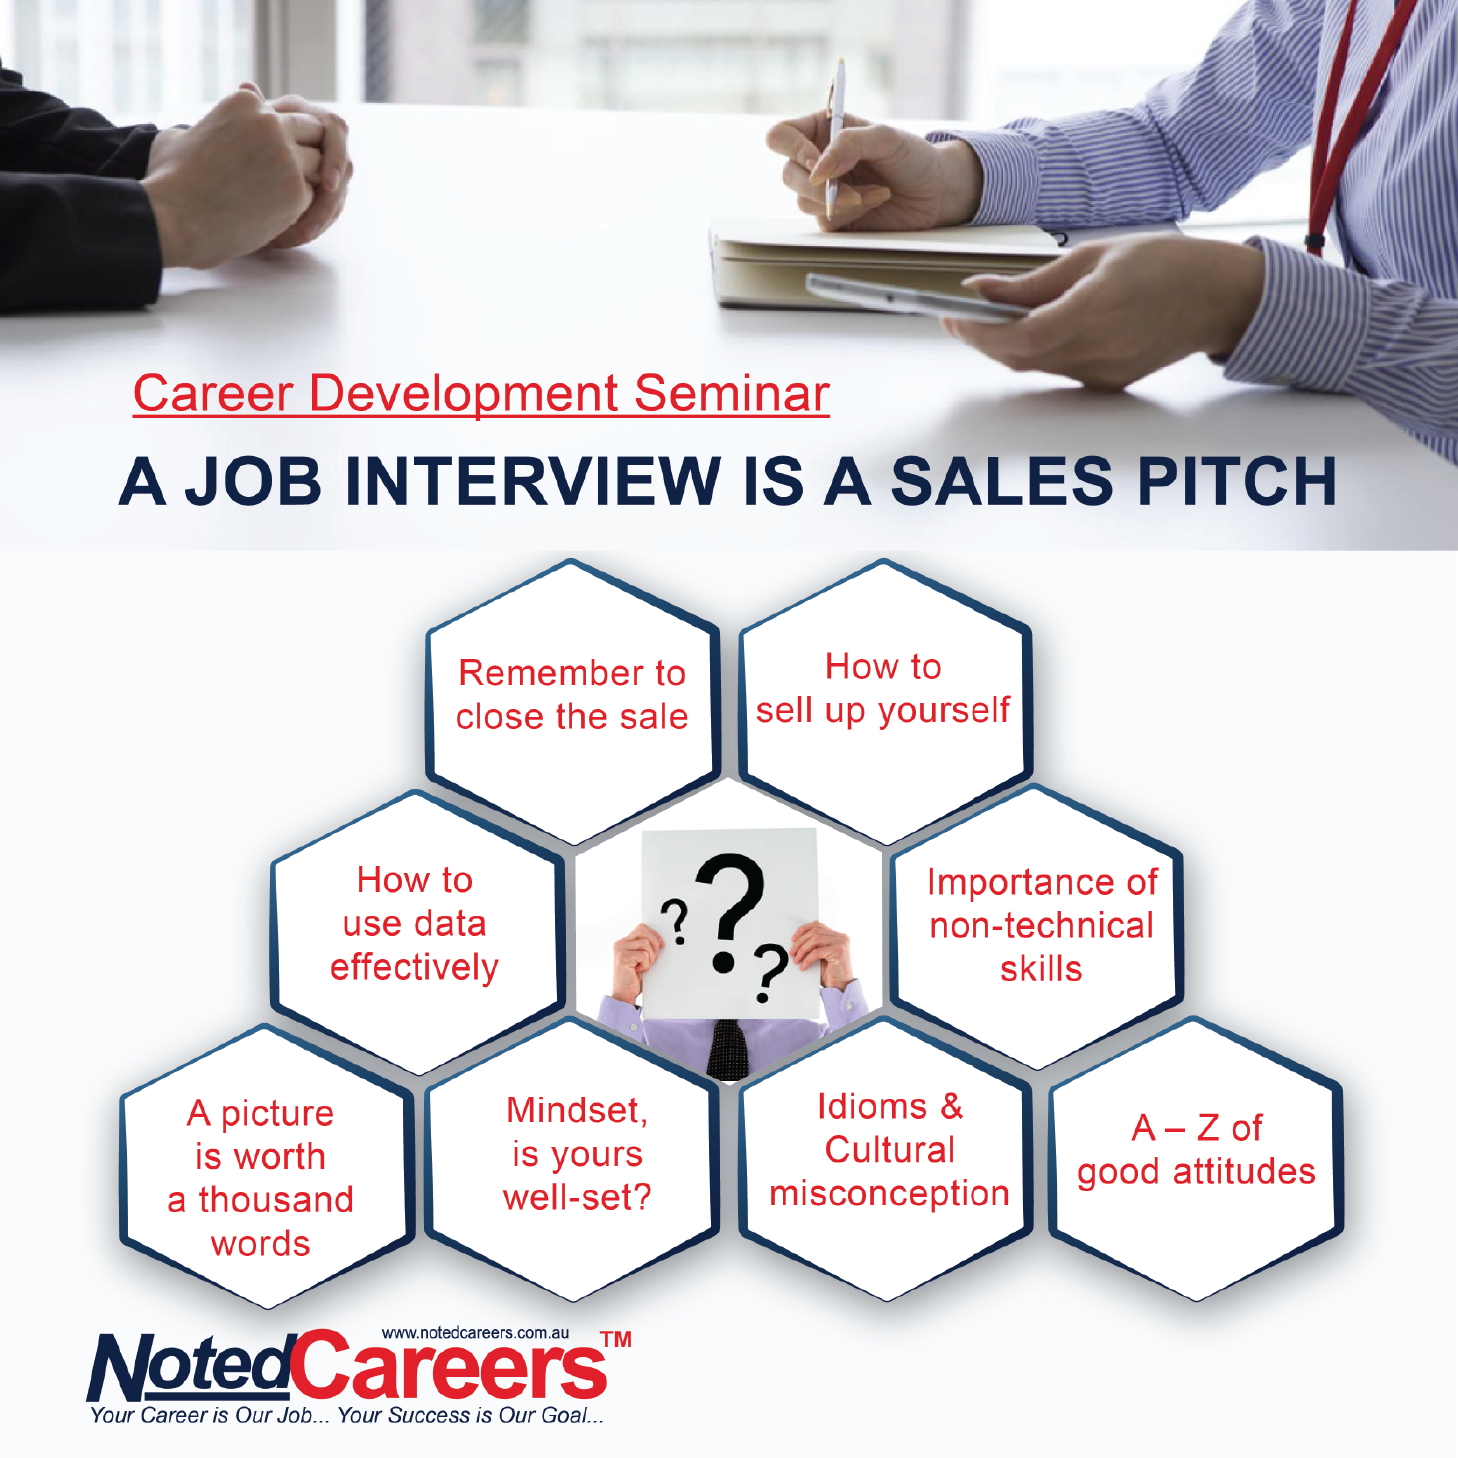 Career Development seminar